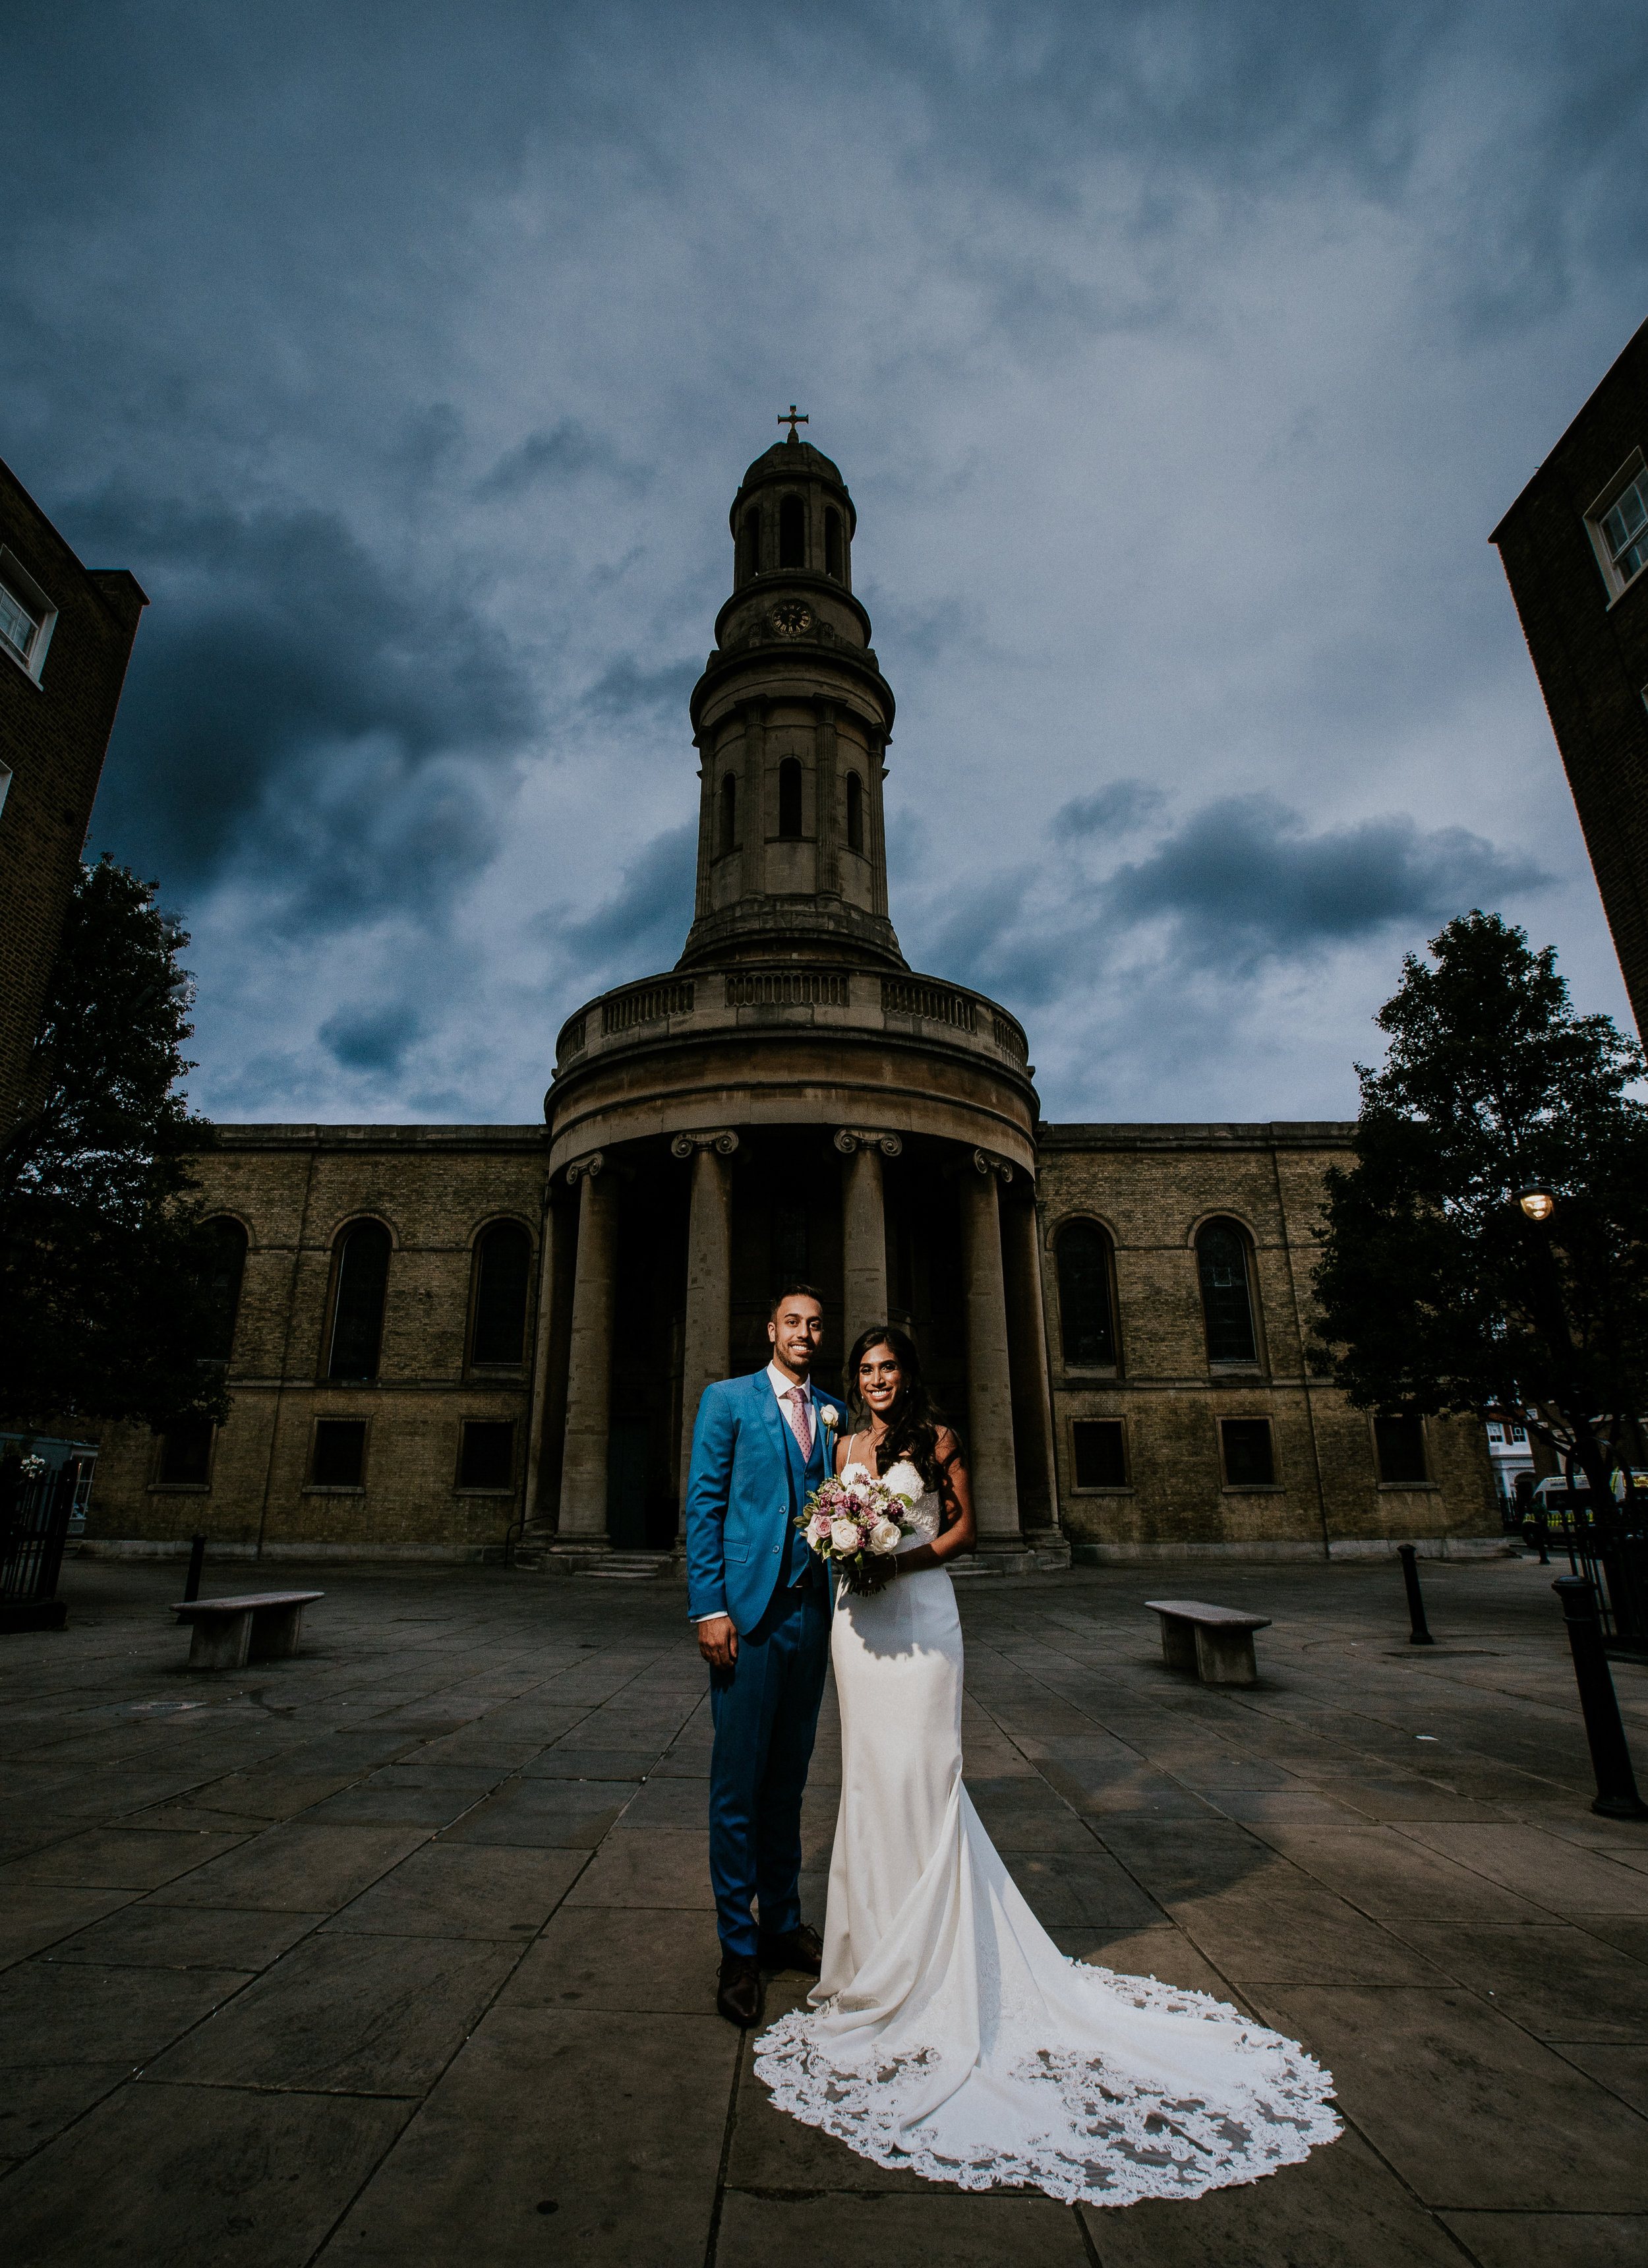 anglo-asian-hindu-civil-wedding-photography-videography-london-portrait-marylebone-old-town-hall-55